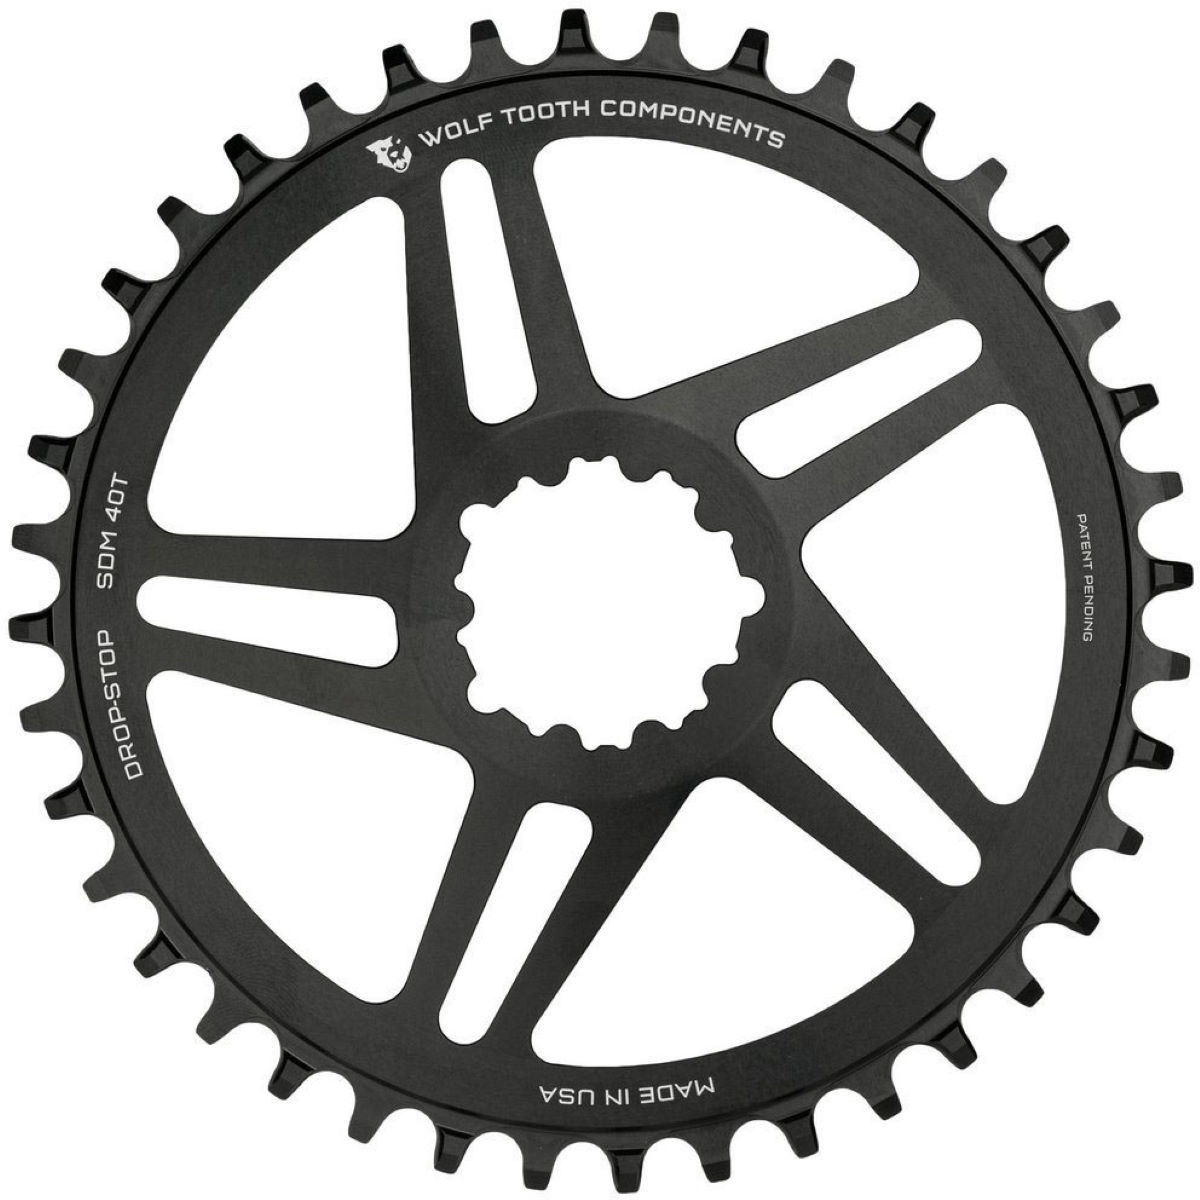 Wolf Tooth Wolf Tooth Direct Mount Chainring   Chain Rings